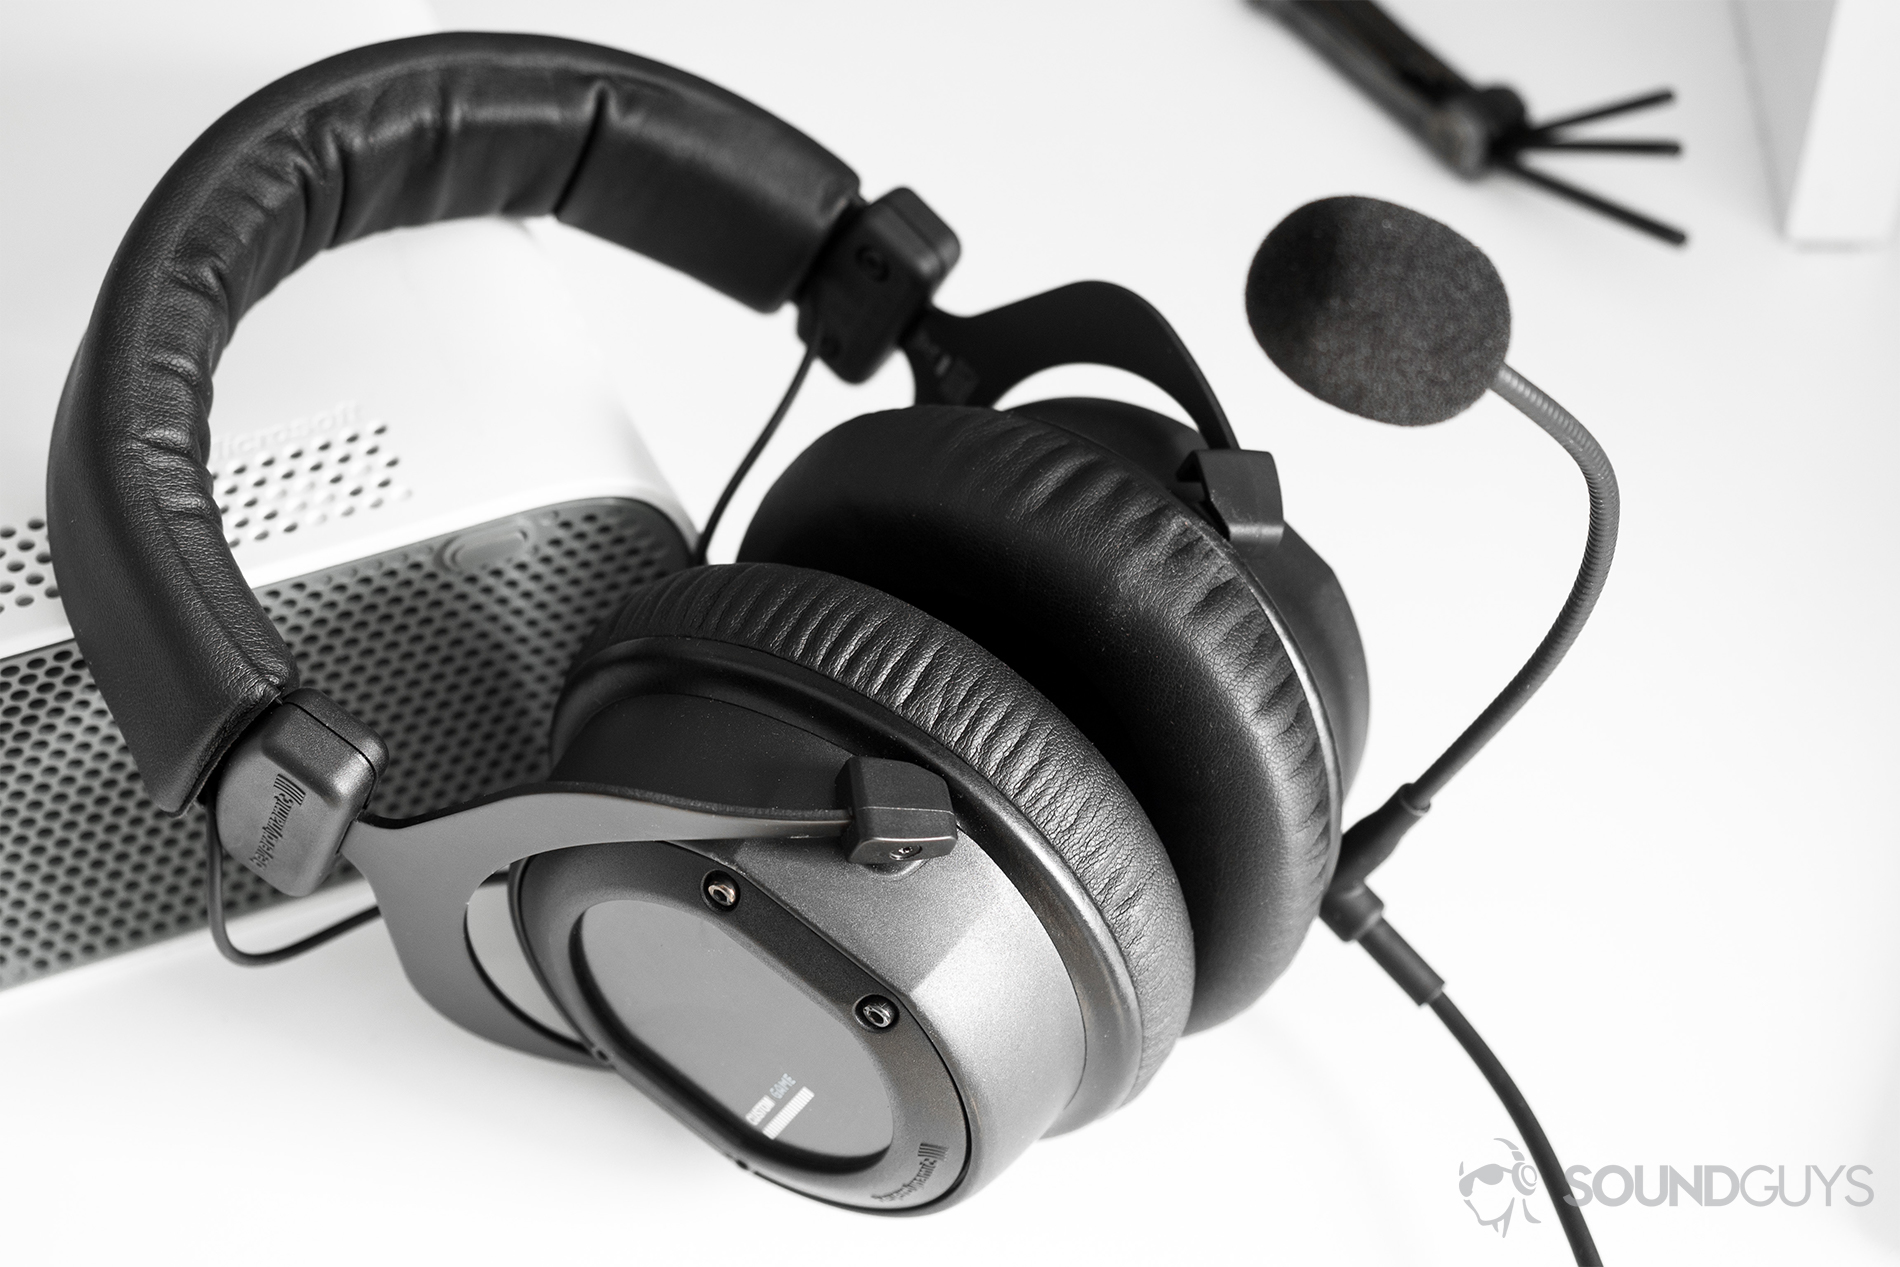 hight resolution of gaming headset beyerydynamic custom game headset leaning on a white xbox 360 with a universal